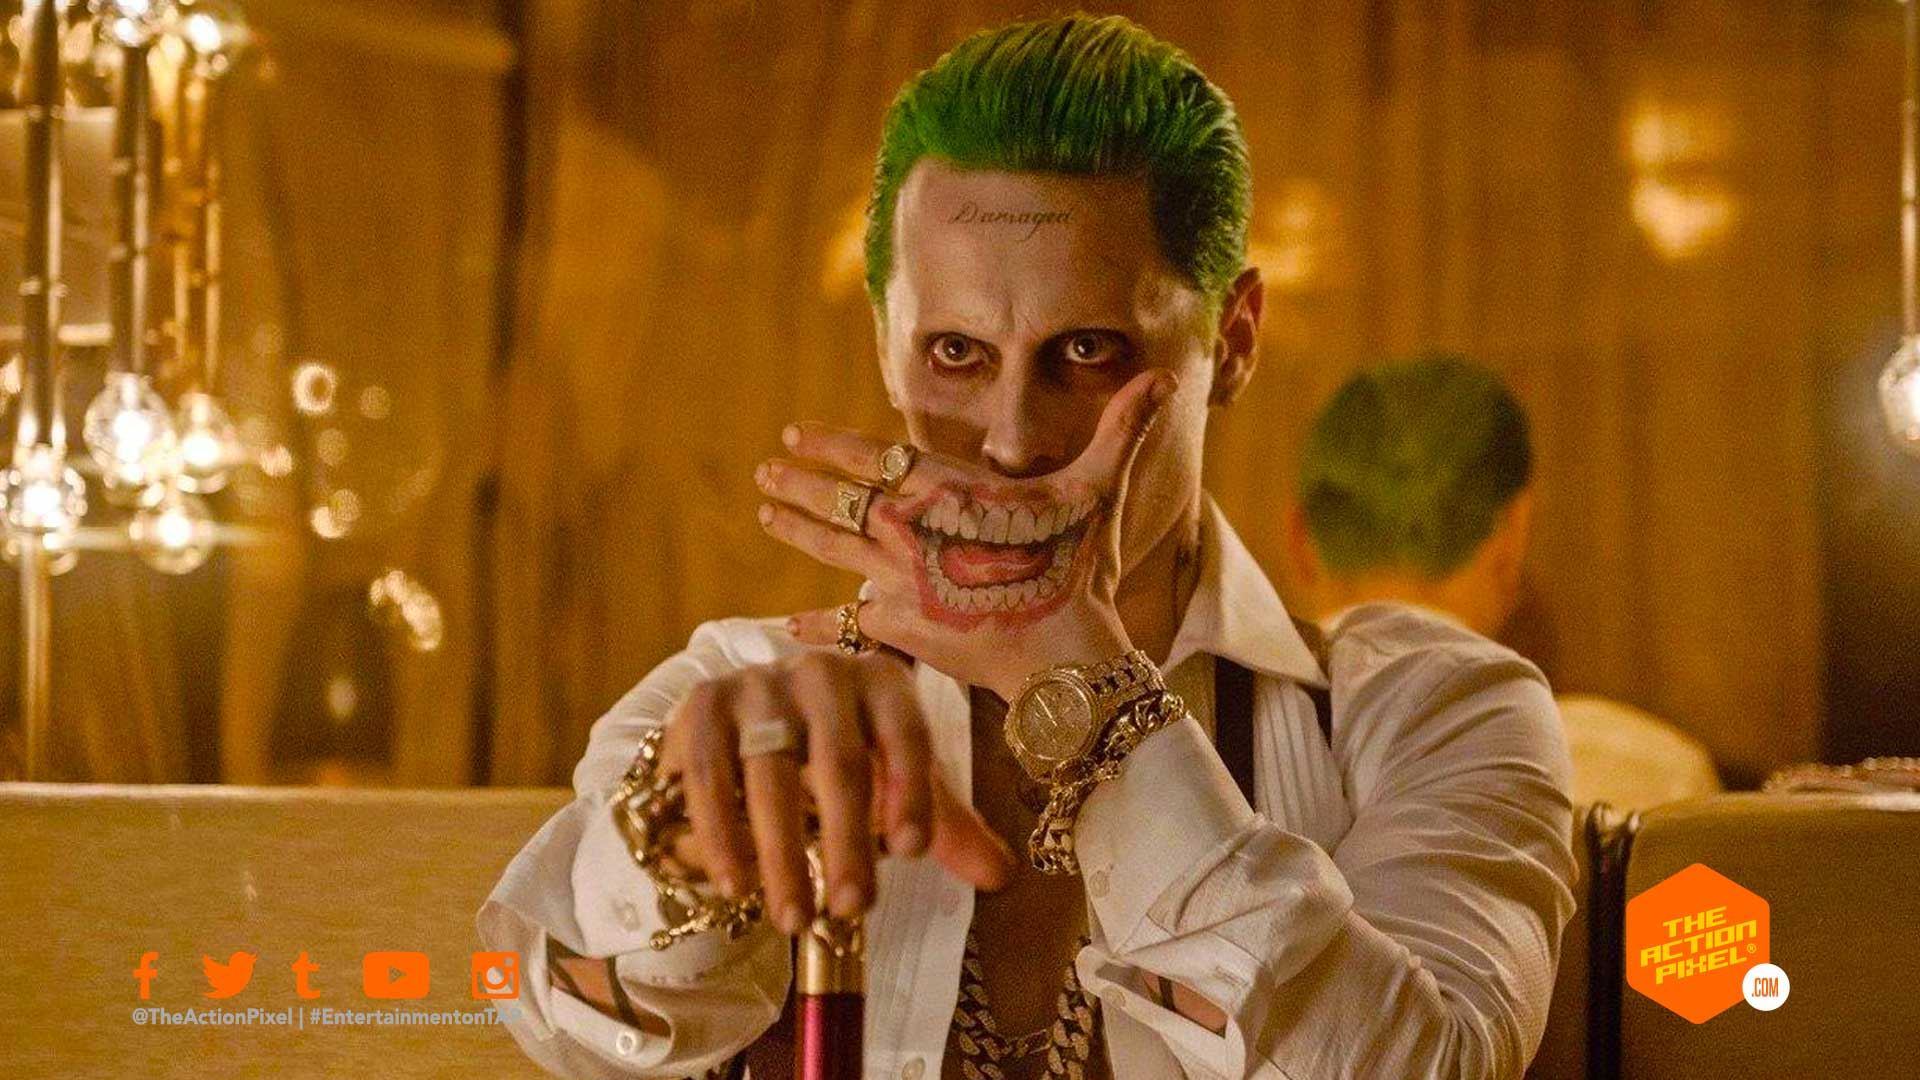 the joker, suicide squad, the justice league, dc comics, hbo max, zack snyder, release the snyder cut, snyder cut,hbo max, entertainment on tap, the action pixel, featured, dc comics, dceu, dceu movie, dc movies,jared leto joker, jared leto batman